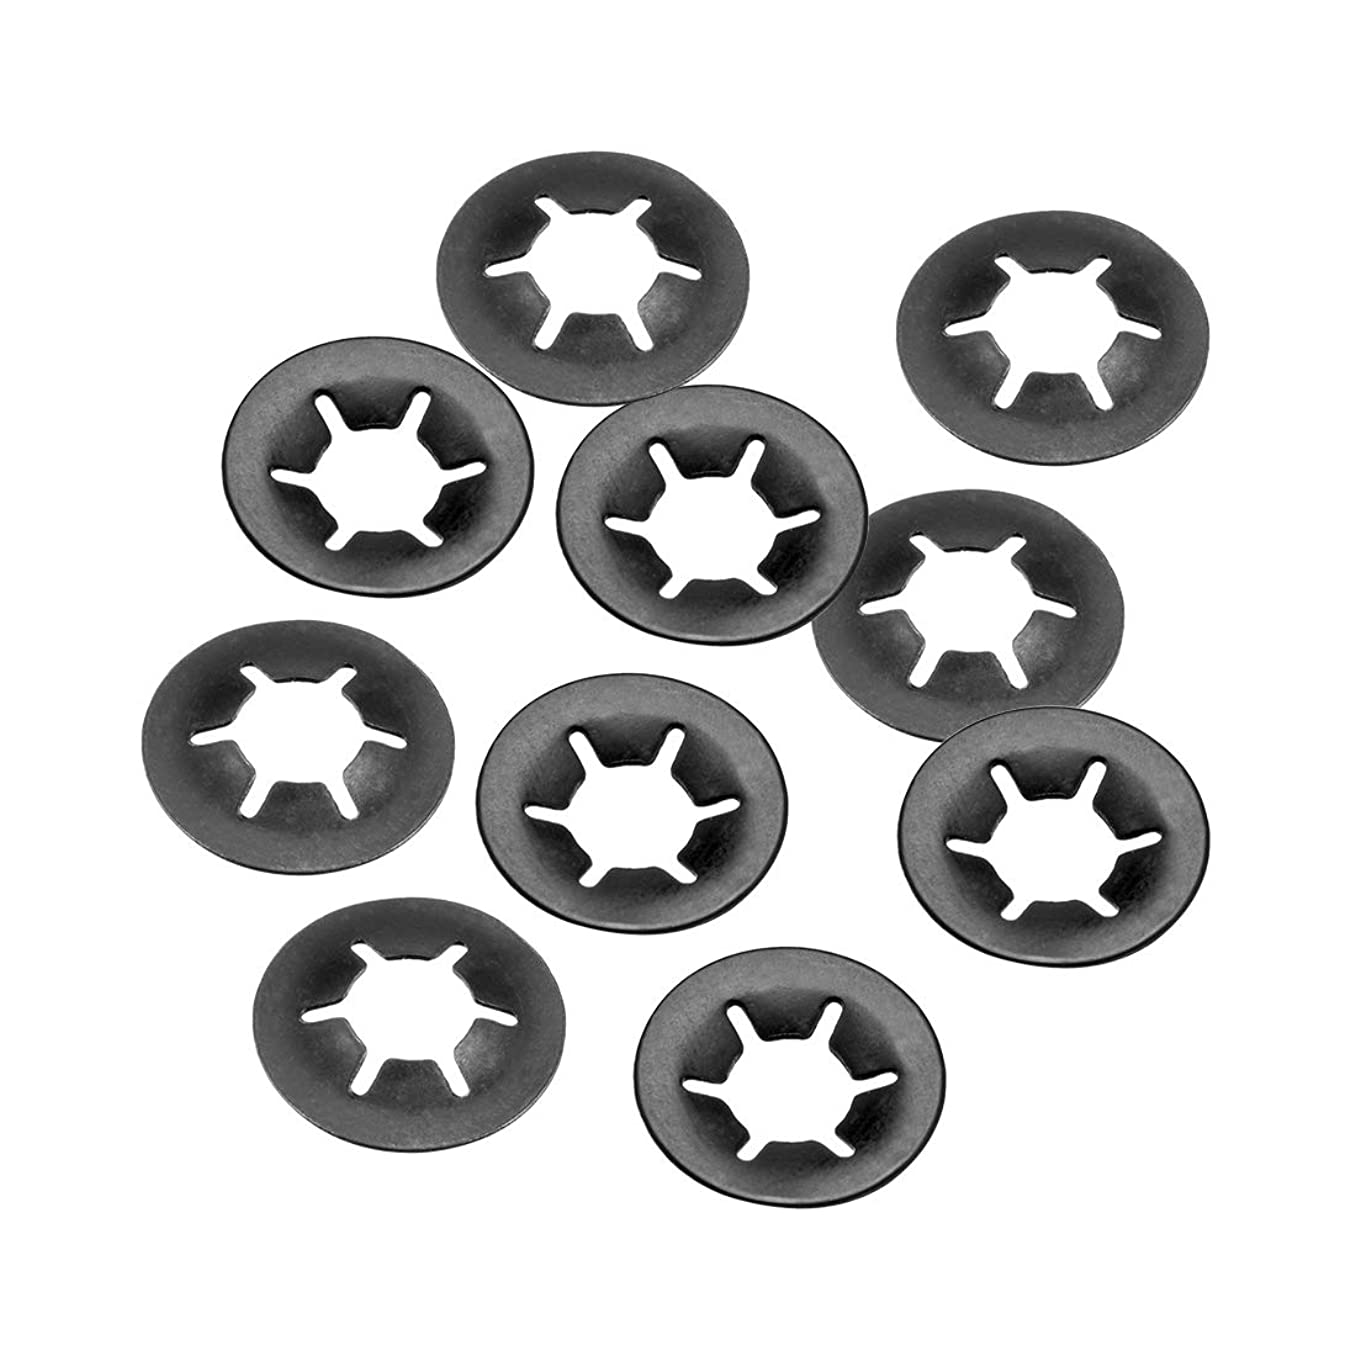 uxcell M6 Internal Tooth Starlock Washer, Push On Lock Washer Locking Washers Clips Fastener, 6mm Inner Dia 14mm Outer Dia, 10pcs